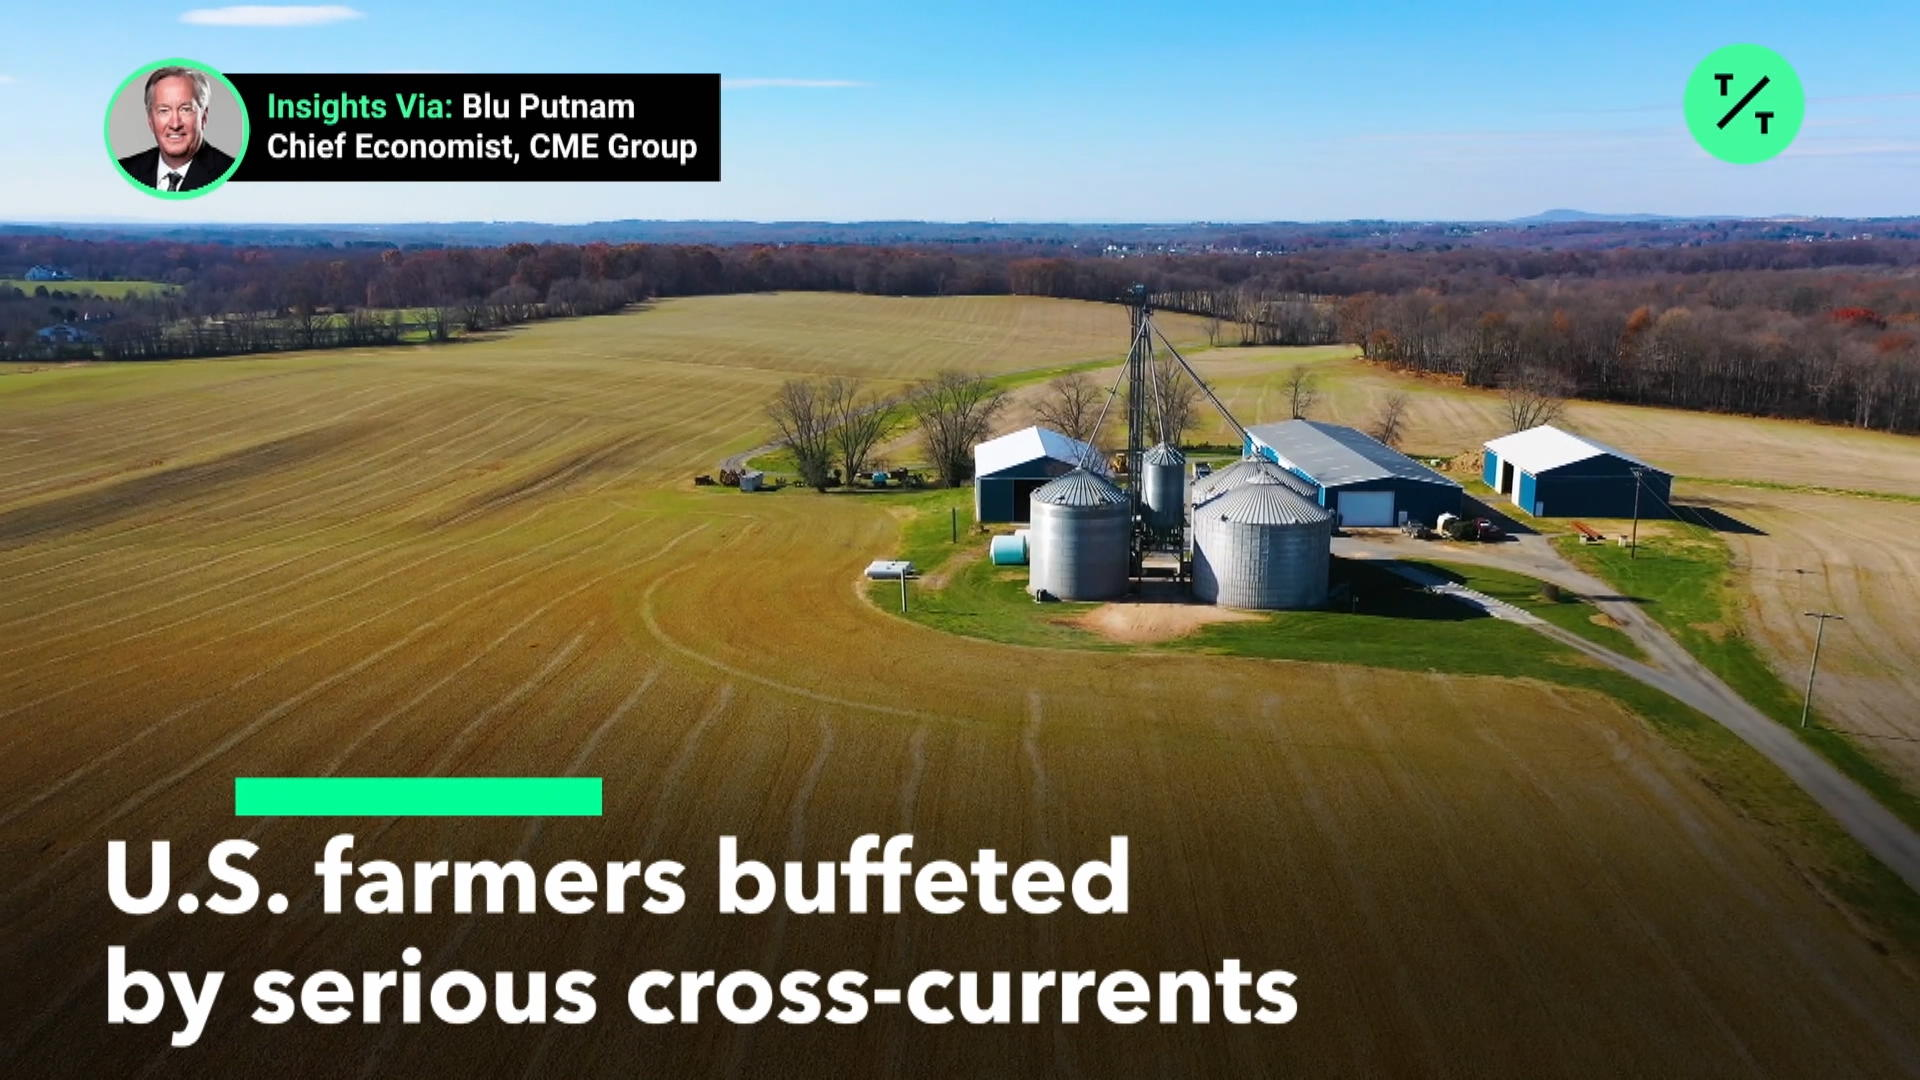 Trade, weather hit farmers